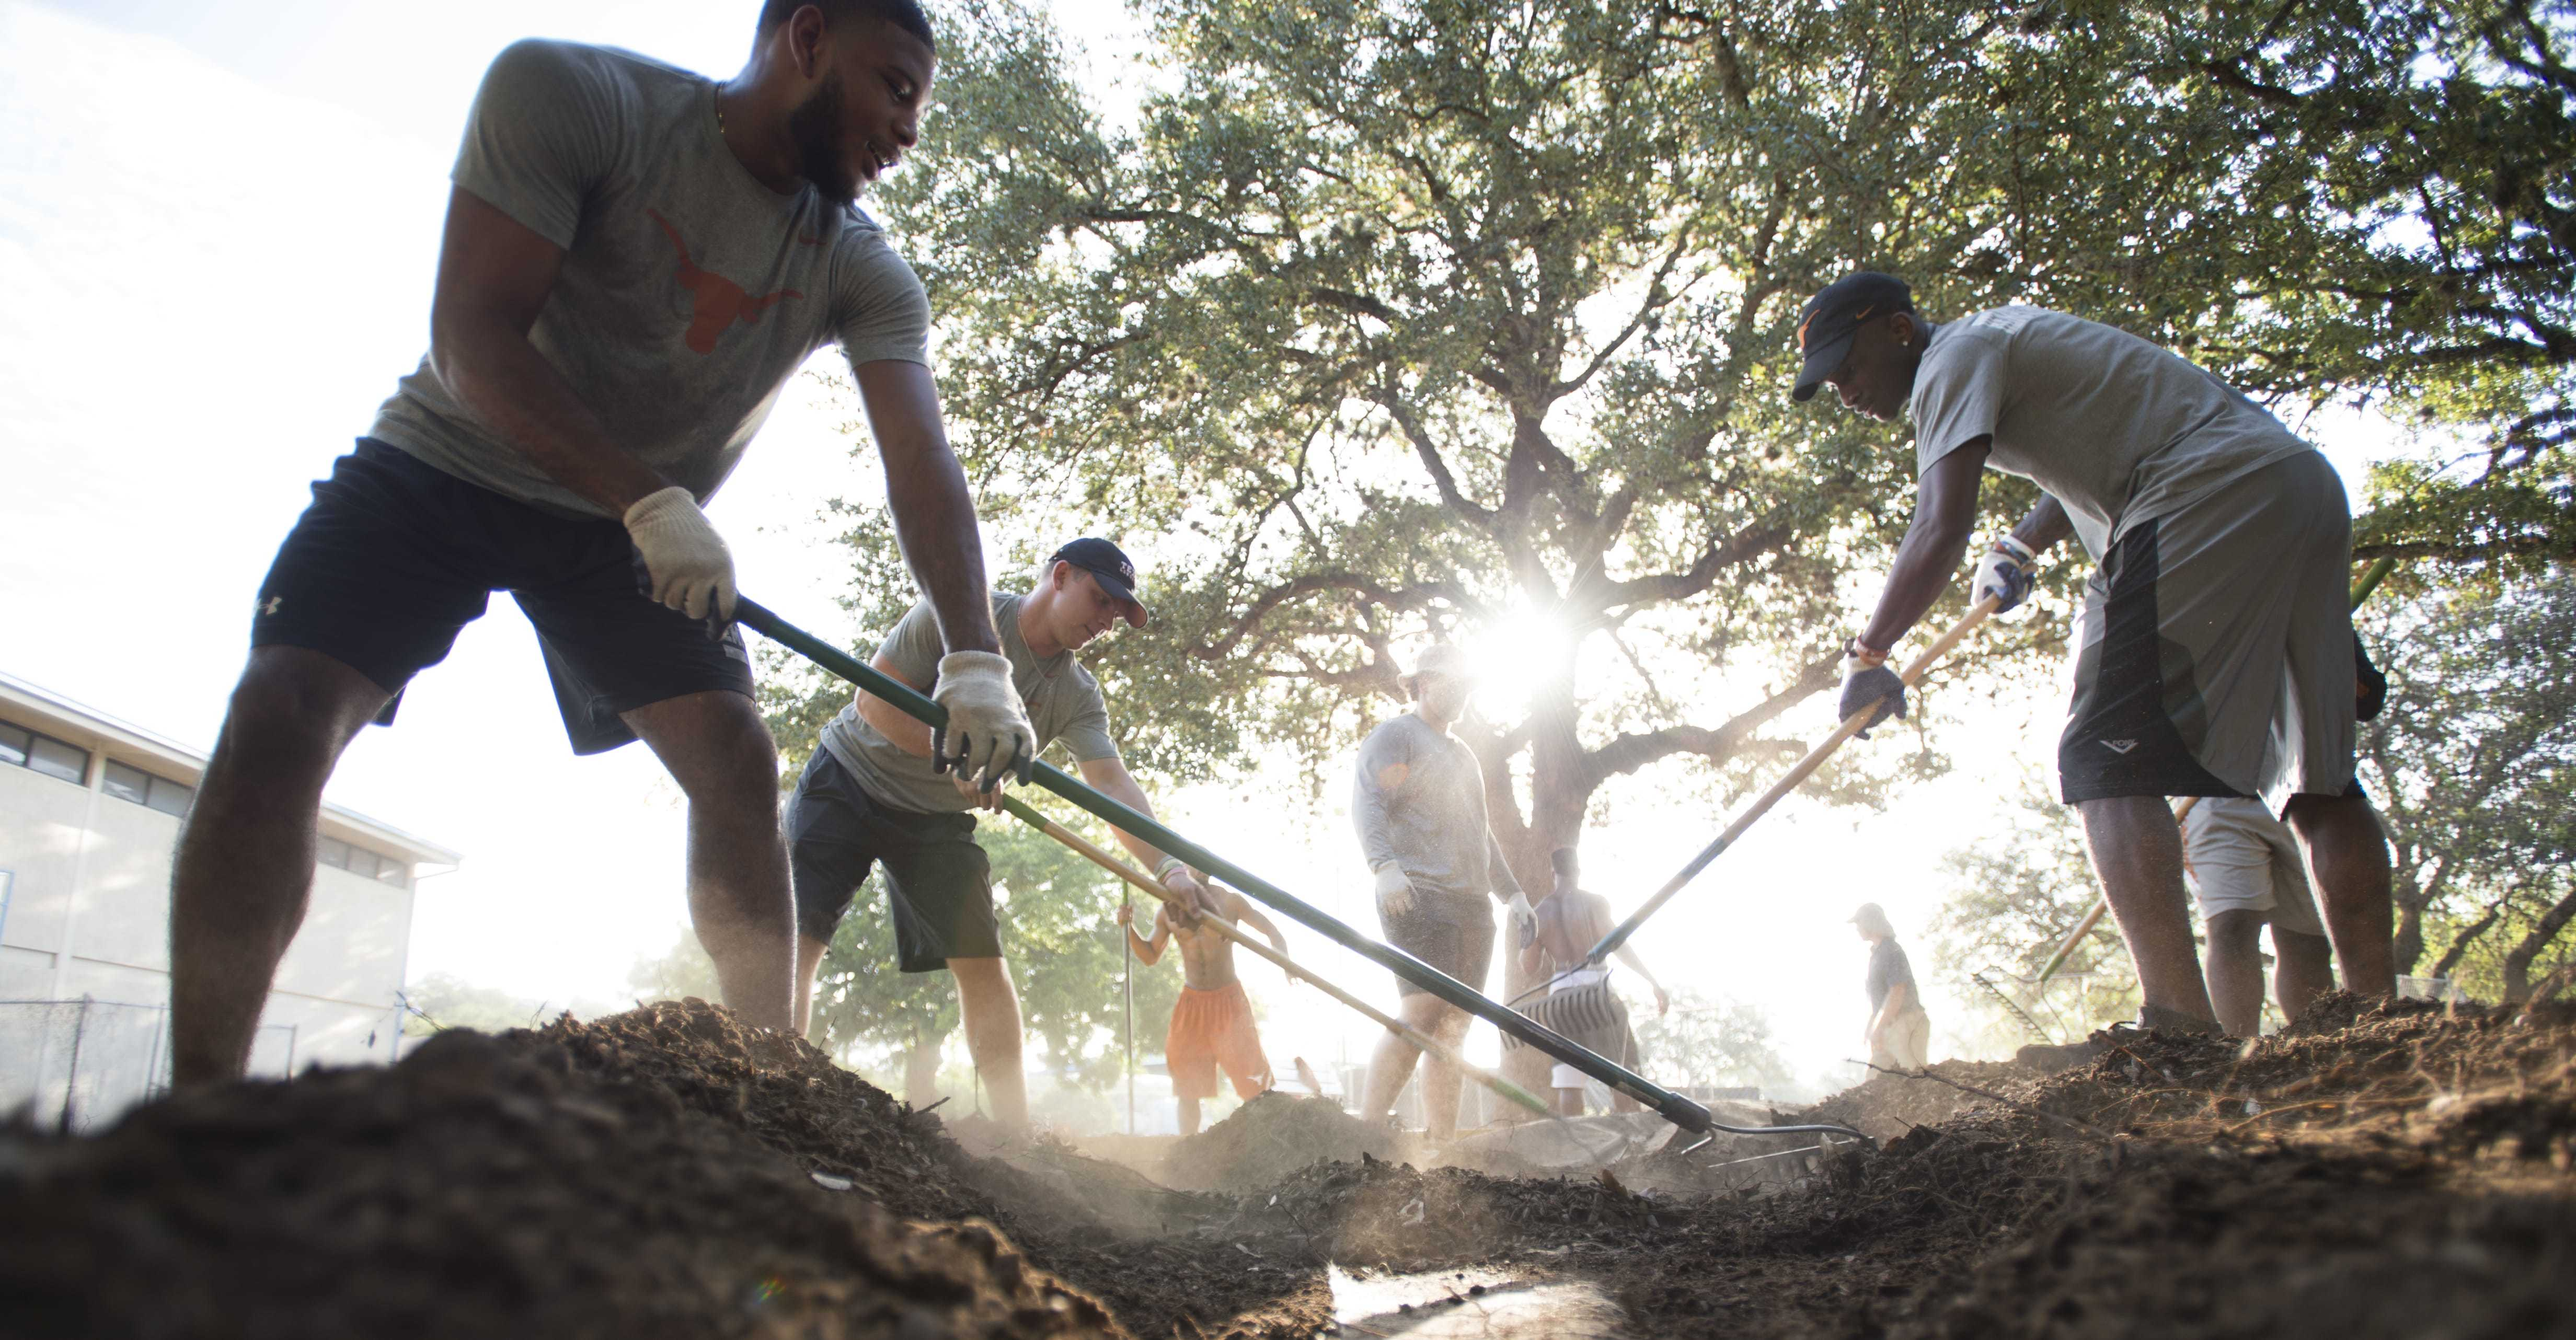 APF financially supports park projects across Austin thanks to generous gifts including support from the Cap10K